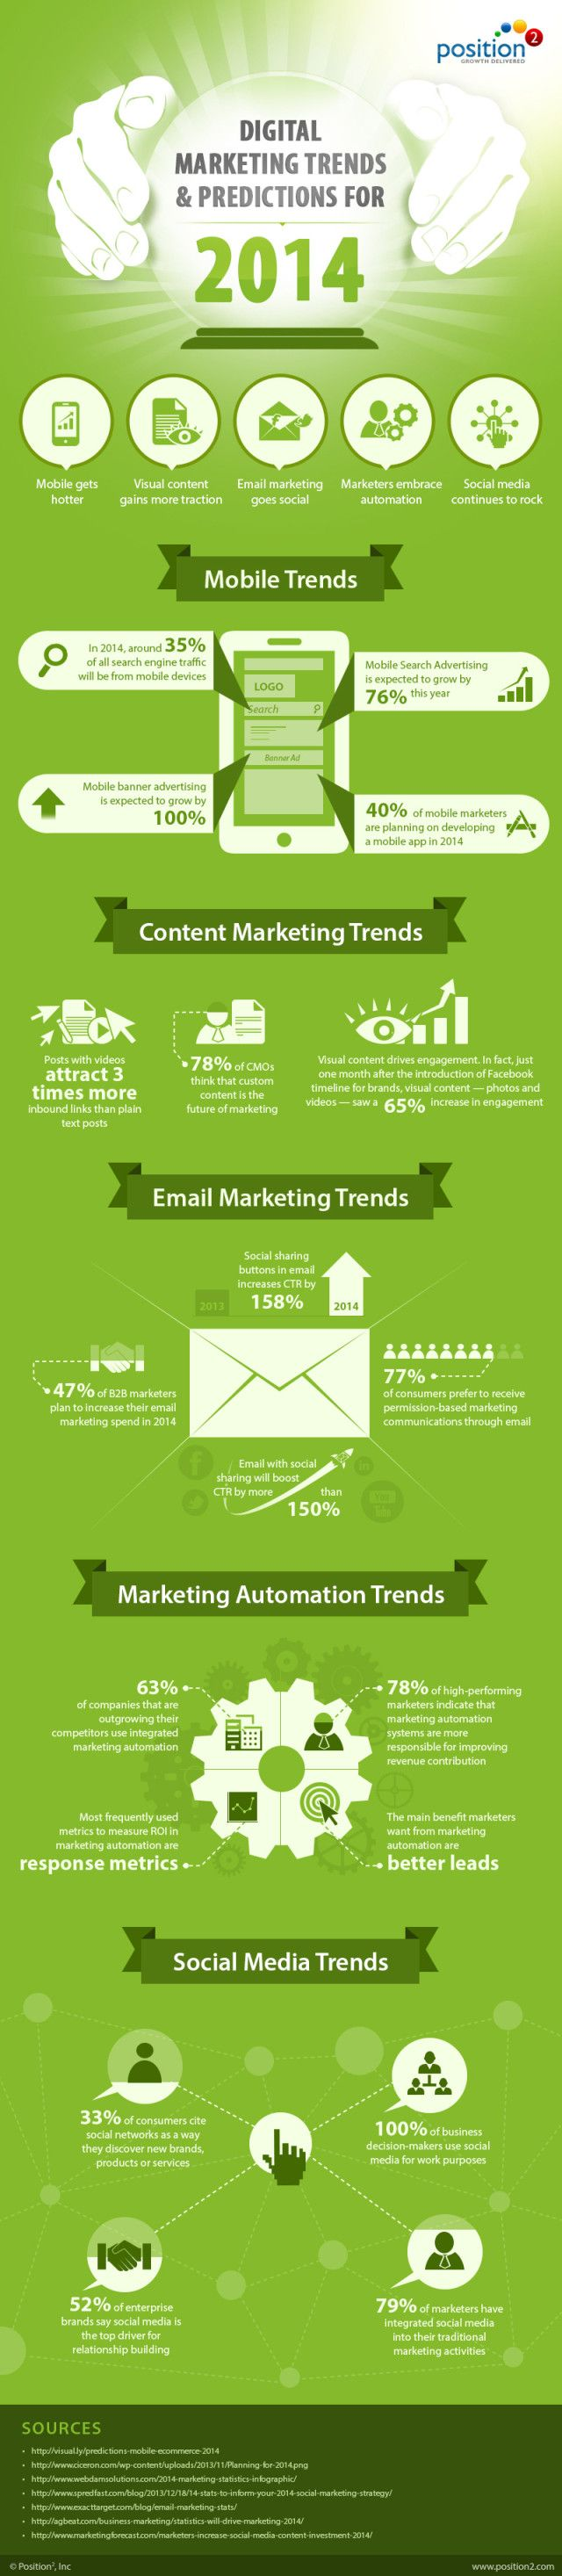 What Are Some Trends And Predictions For Digital Marketing 2014?